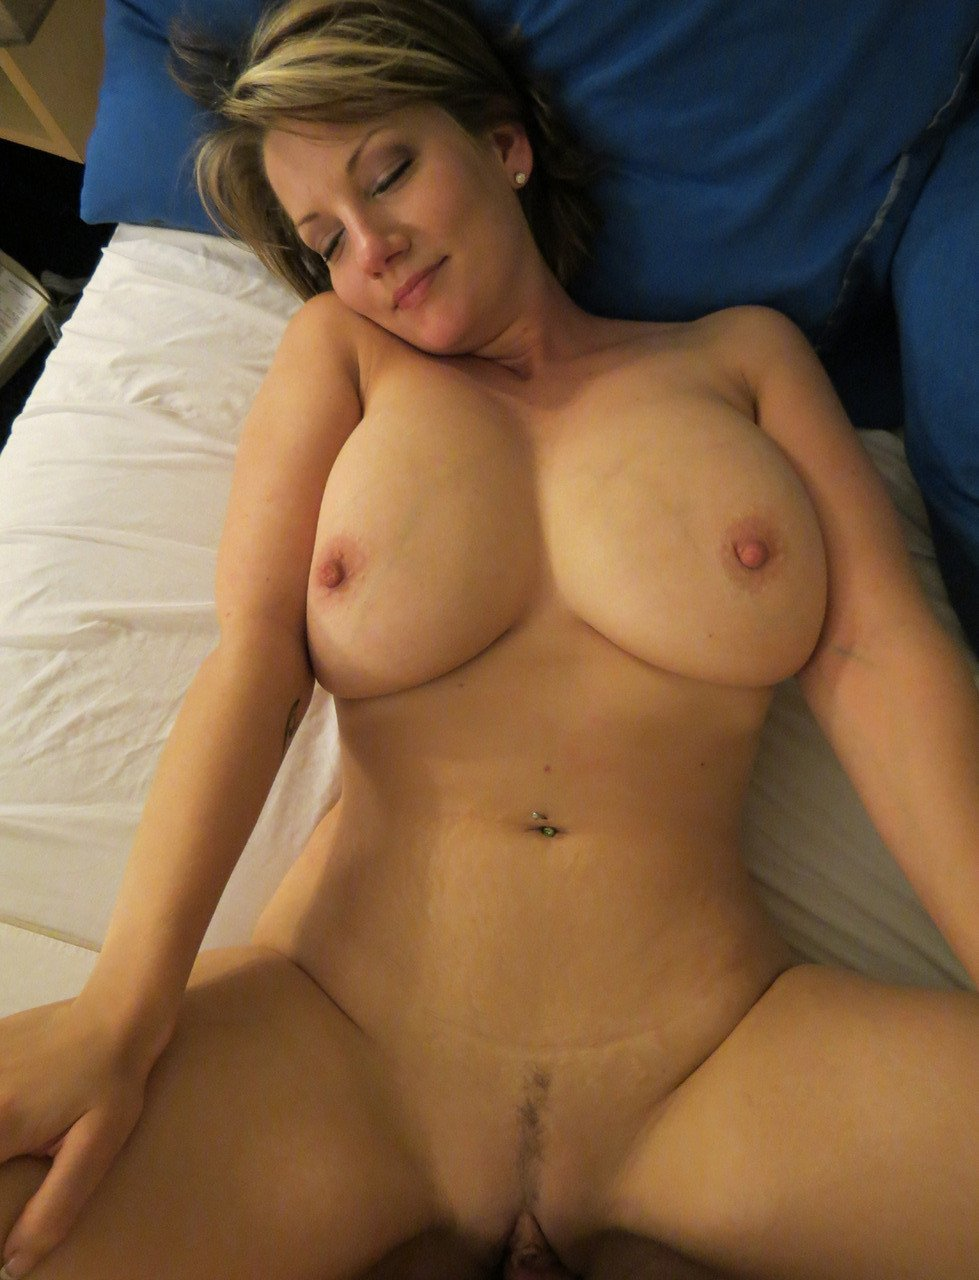 little sexy girl fucking